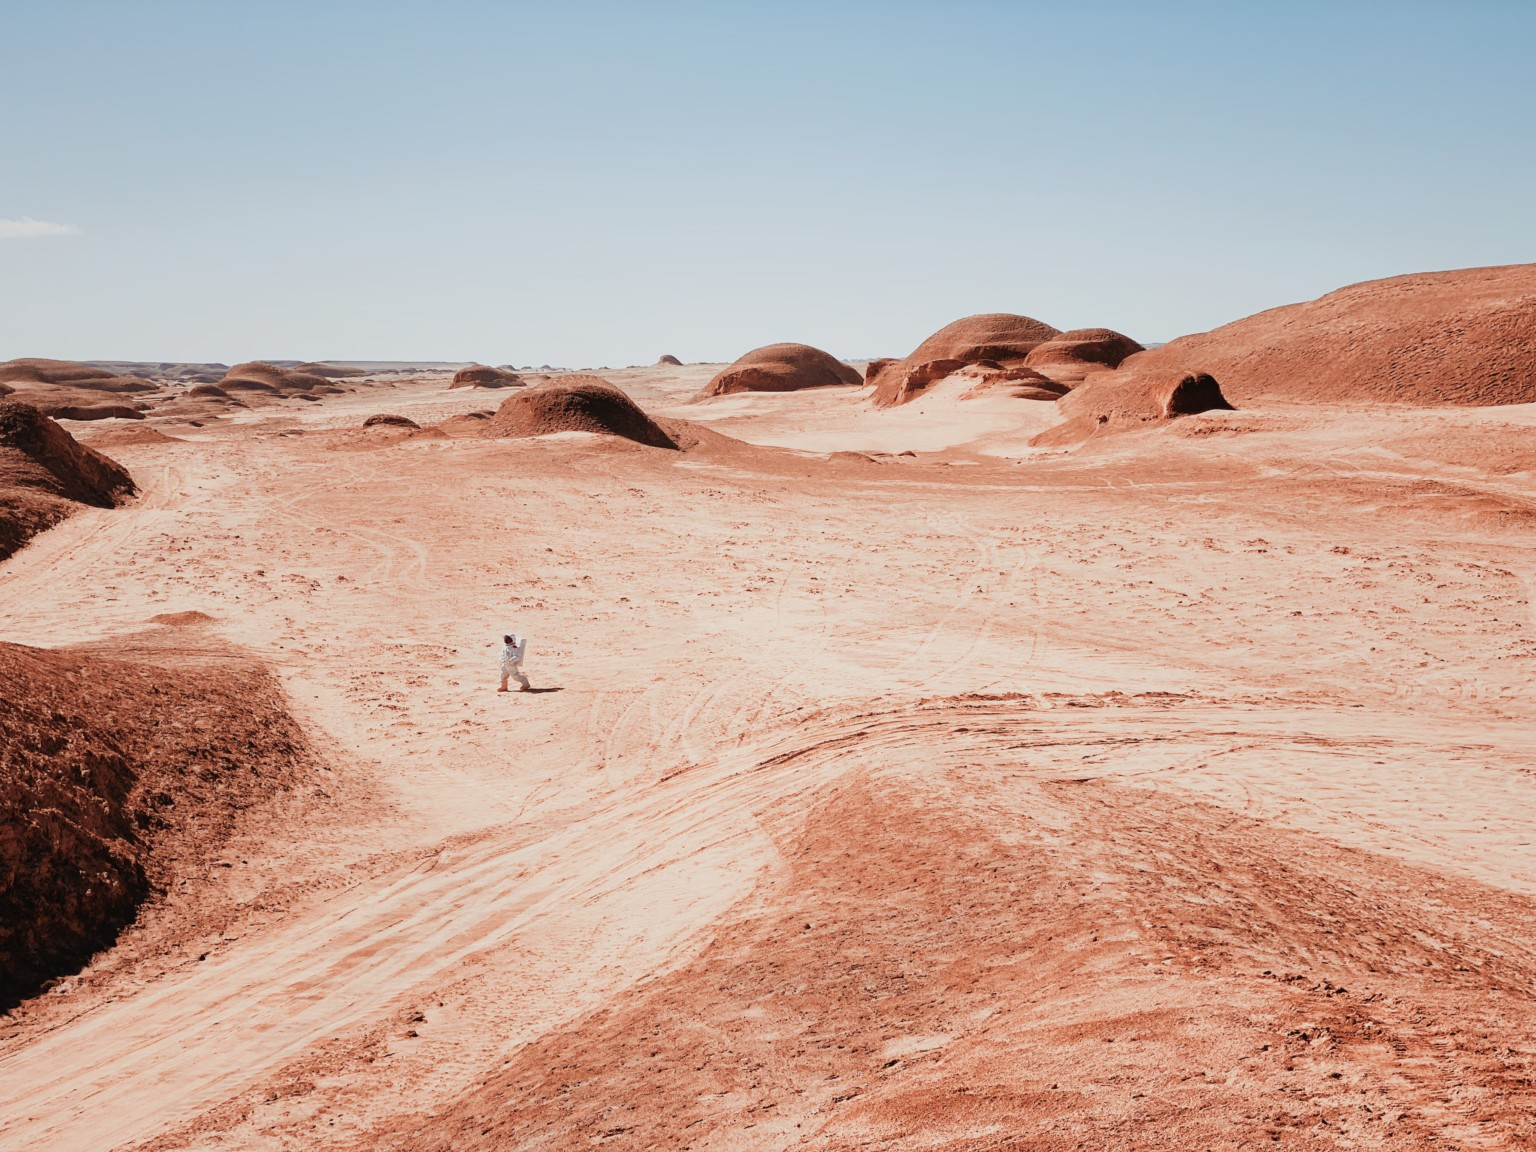 Winners of the iPhone Photography Awards